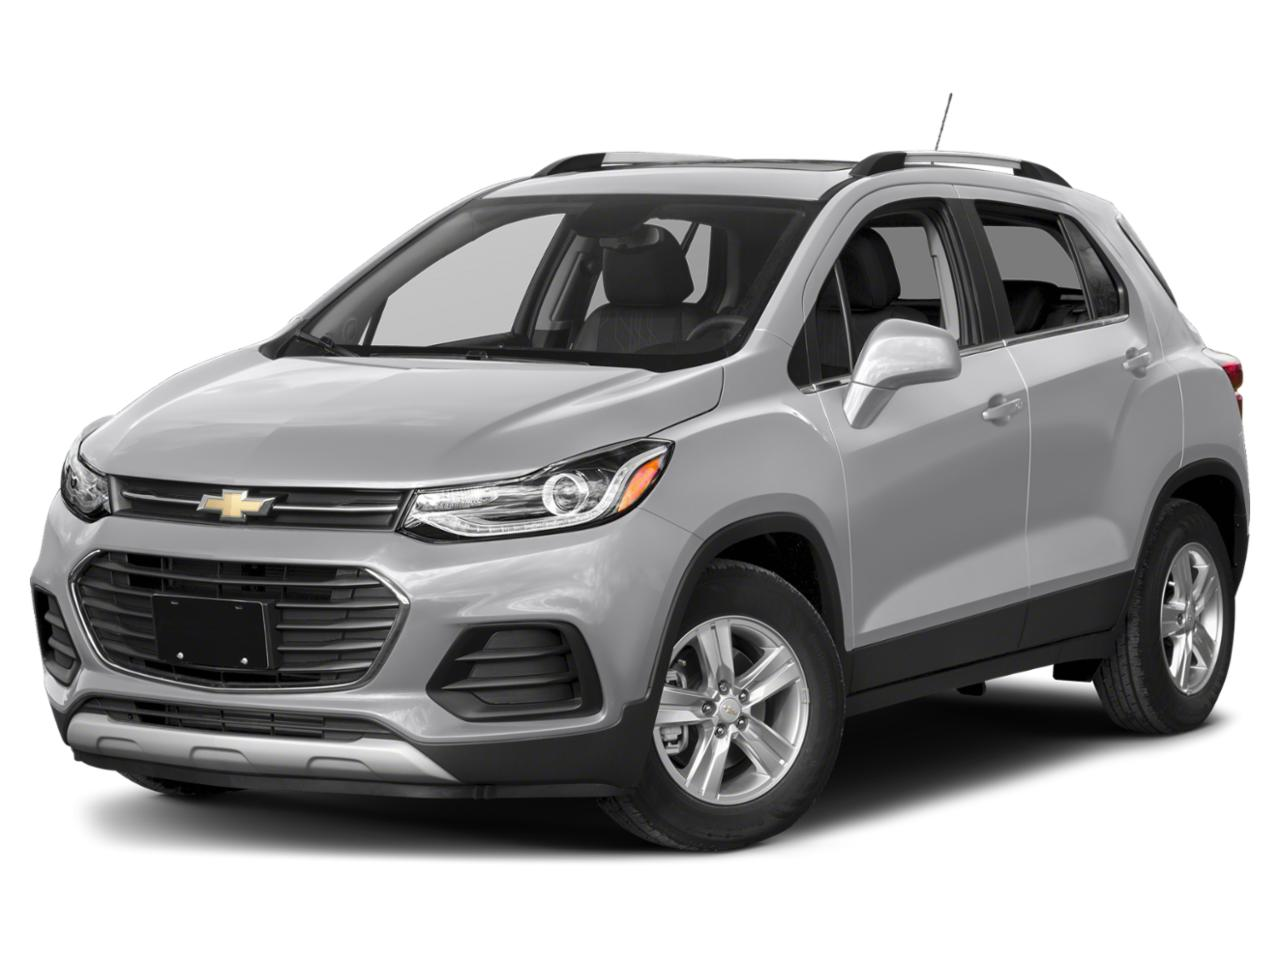 2019 Chevrolet Trax Vehicle Photo in Terryville, CT 06786